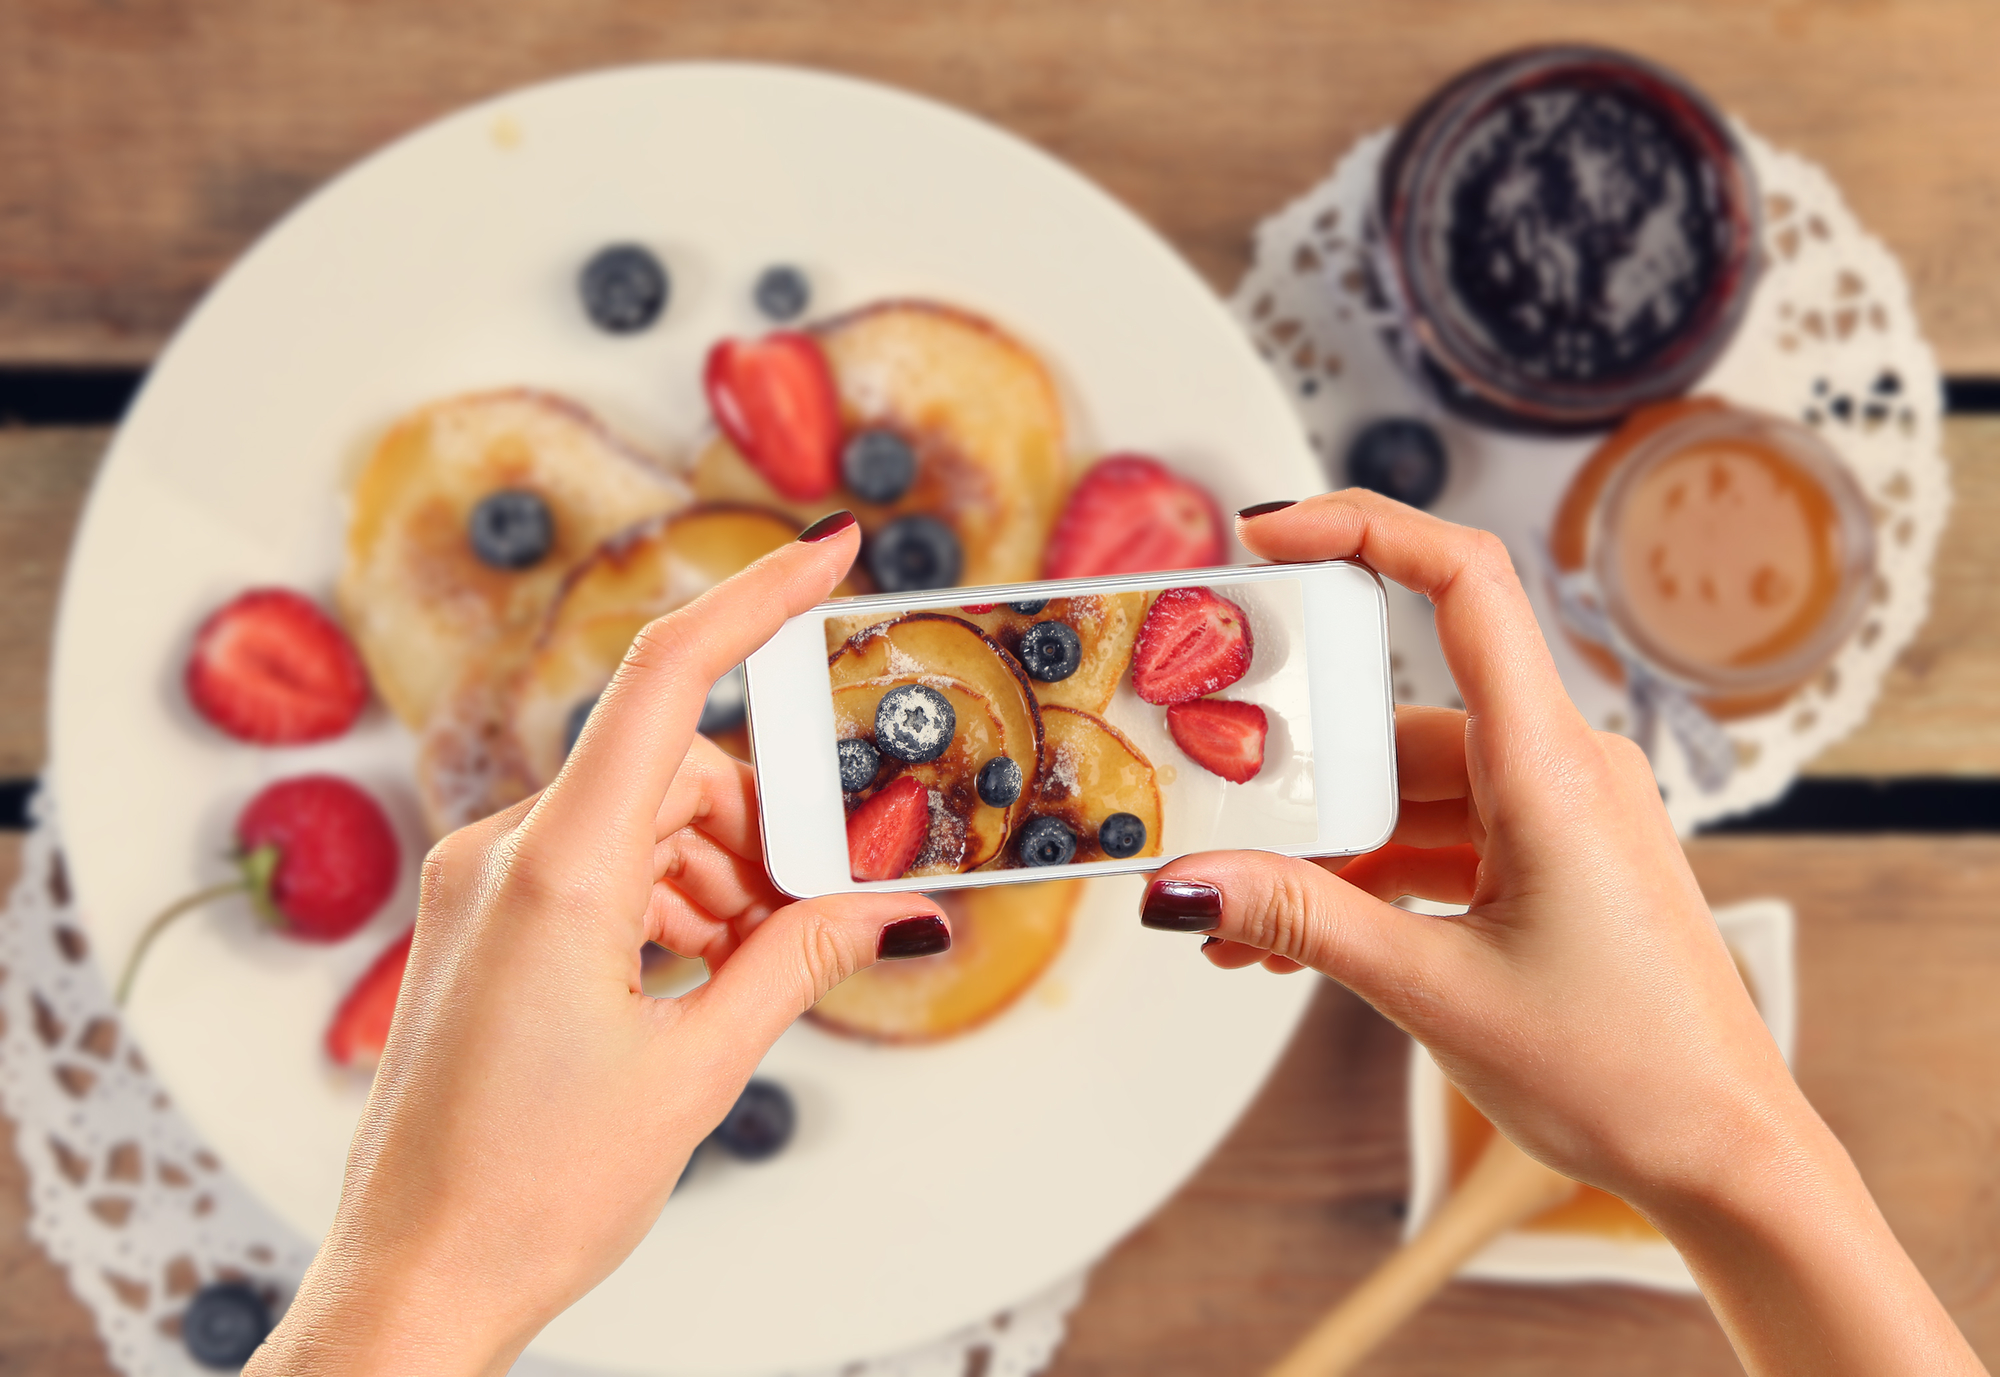 How to Produce Quality Instagram Content For Brand Awareness